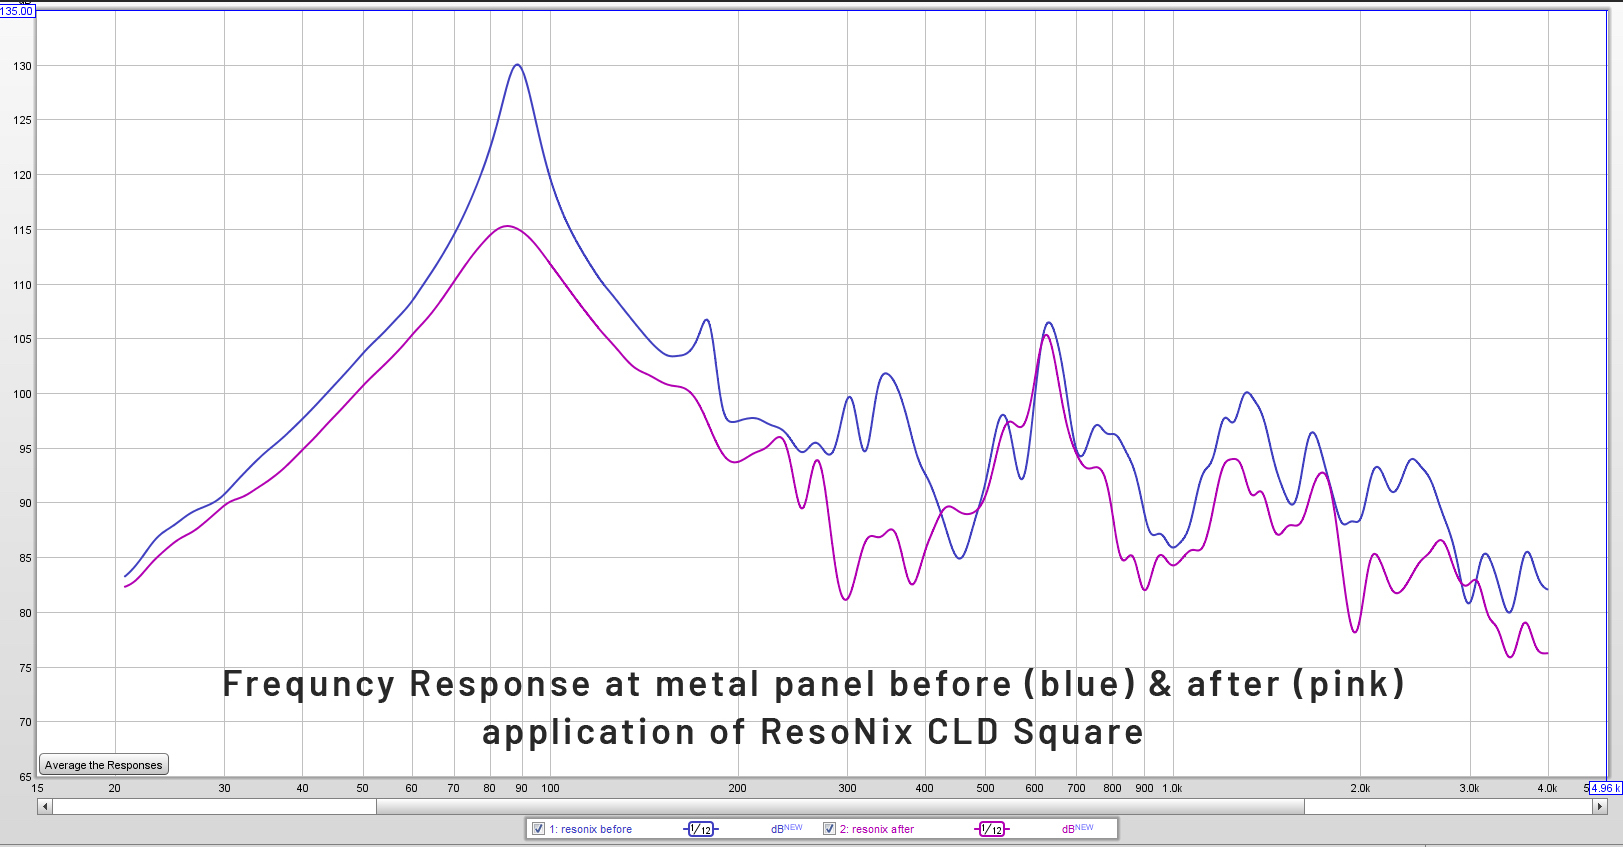 Resonix-response-and-waterfalls-before-after-application-line